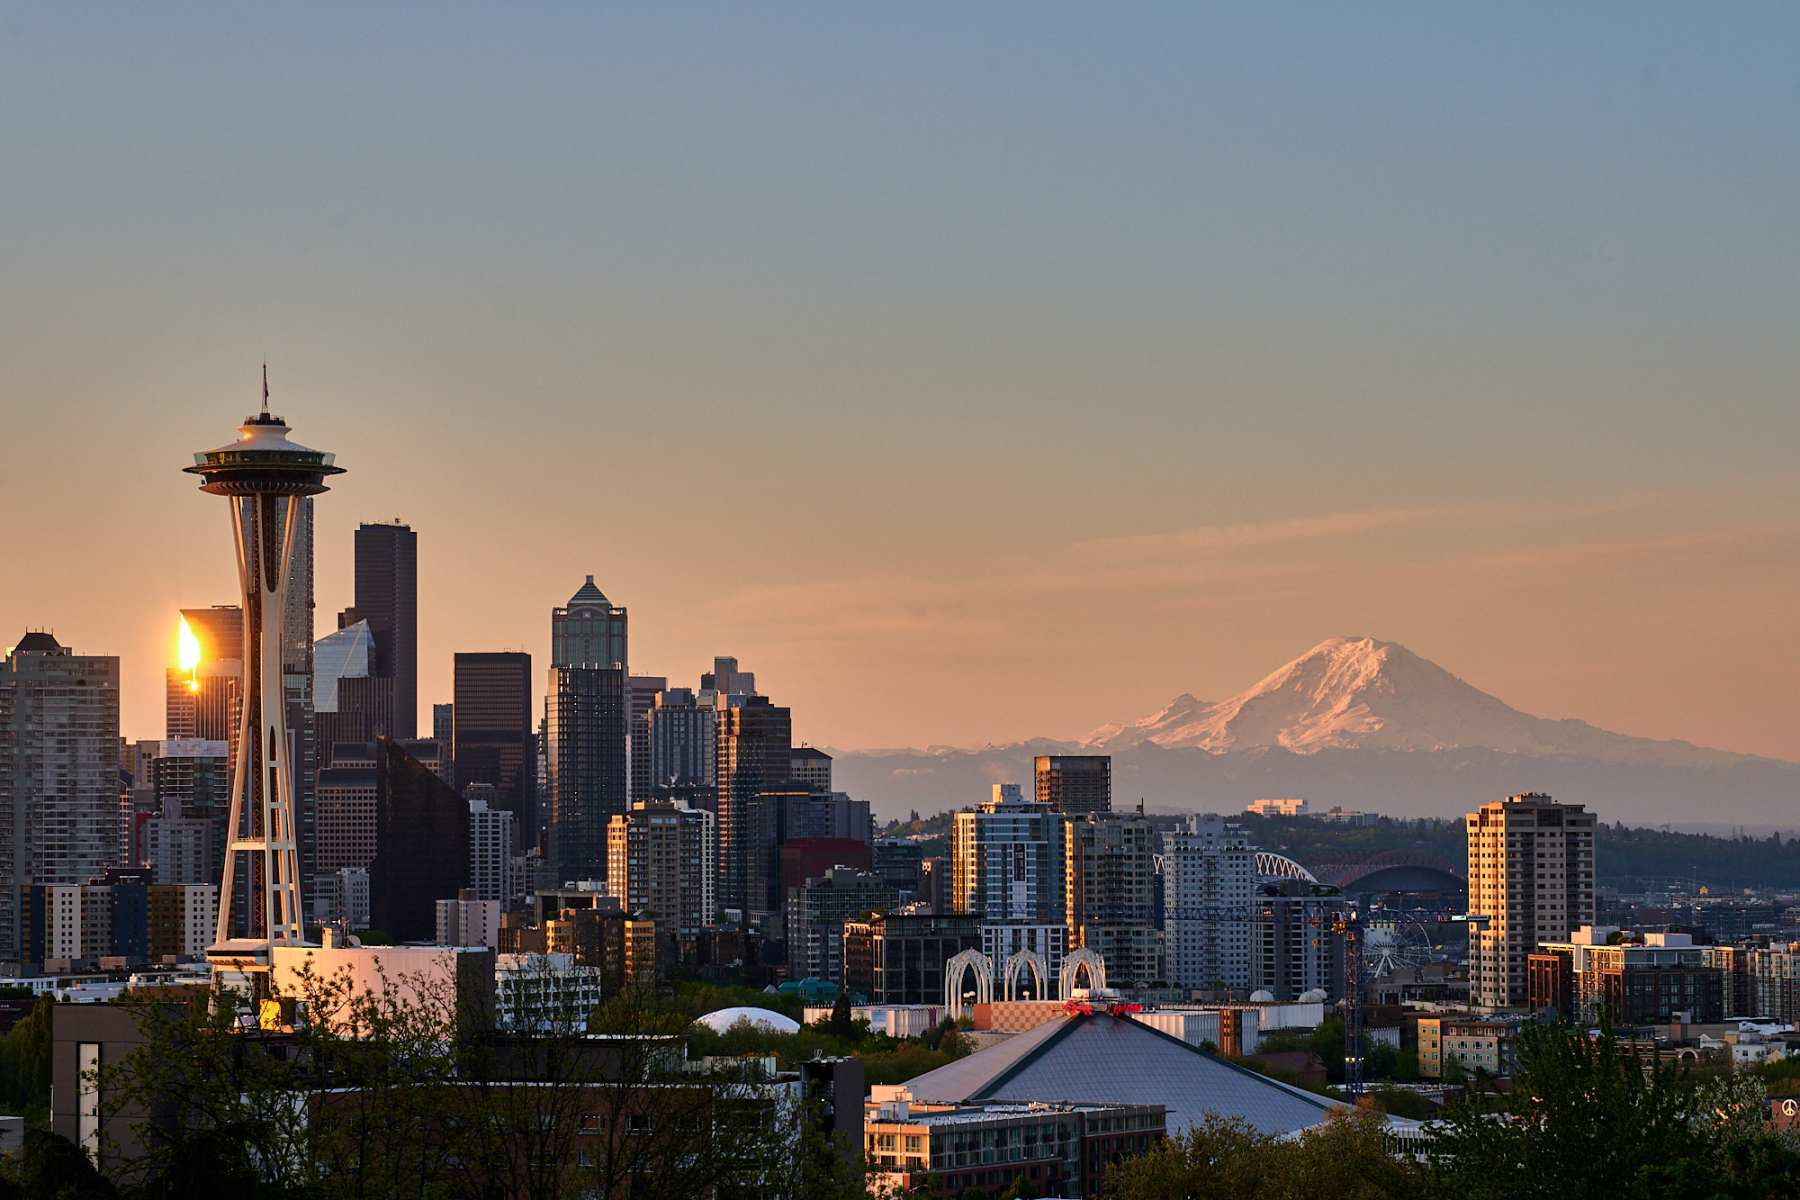 Sunrise seen from Kerry Park